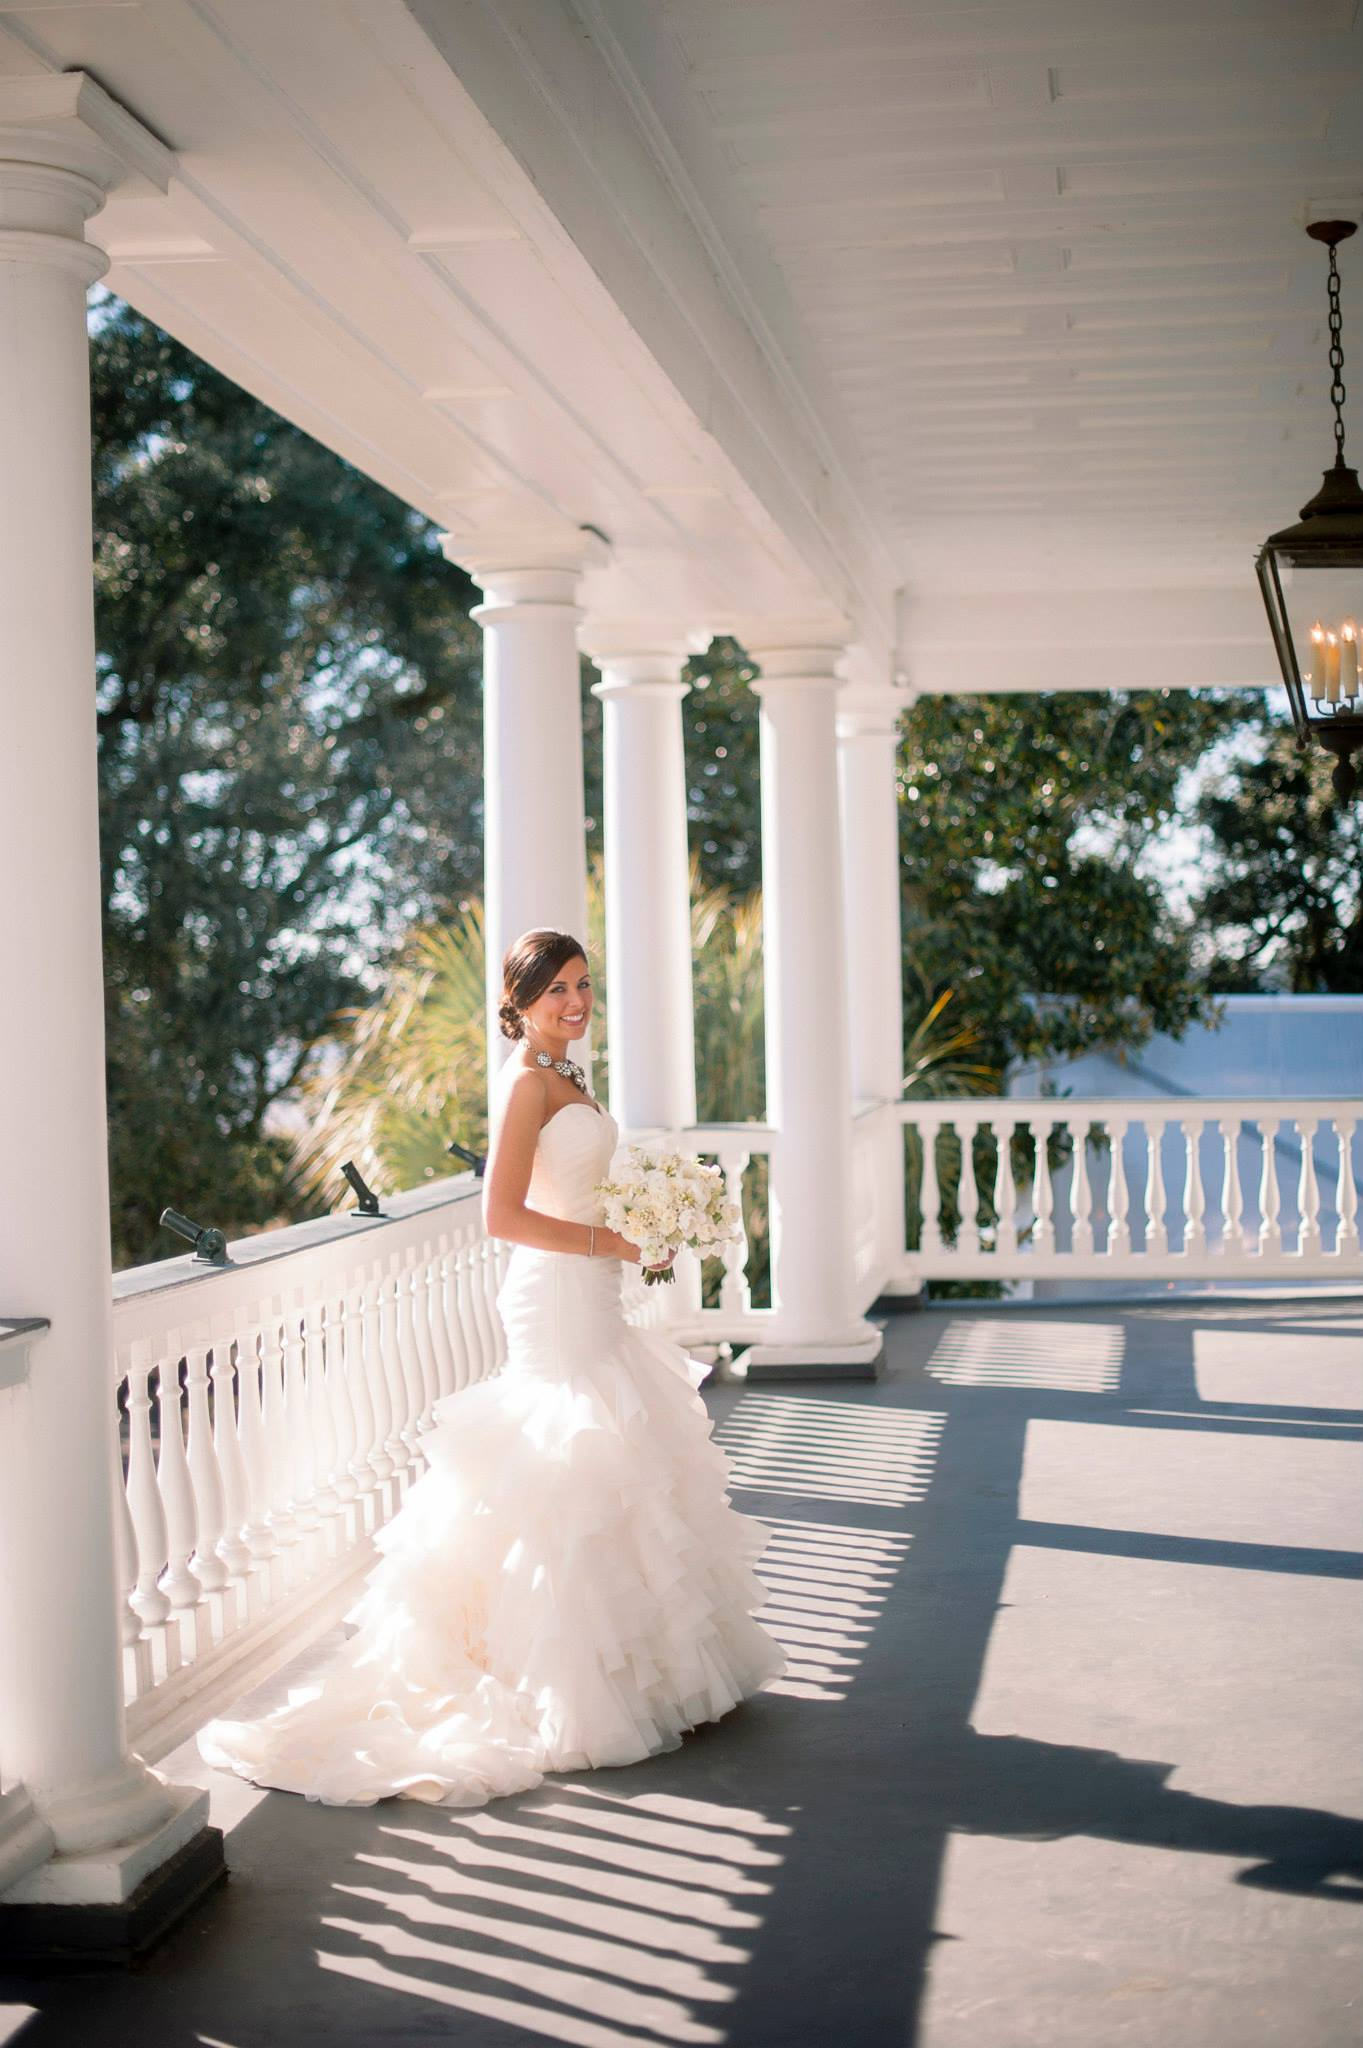 Emily on her wedding day in Charleston, South Carolina, on February 15, 2014. Her dress is by Dennis Basso. Photograph by Tim Willoughby.